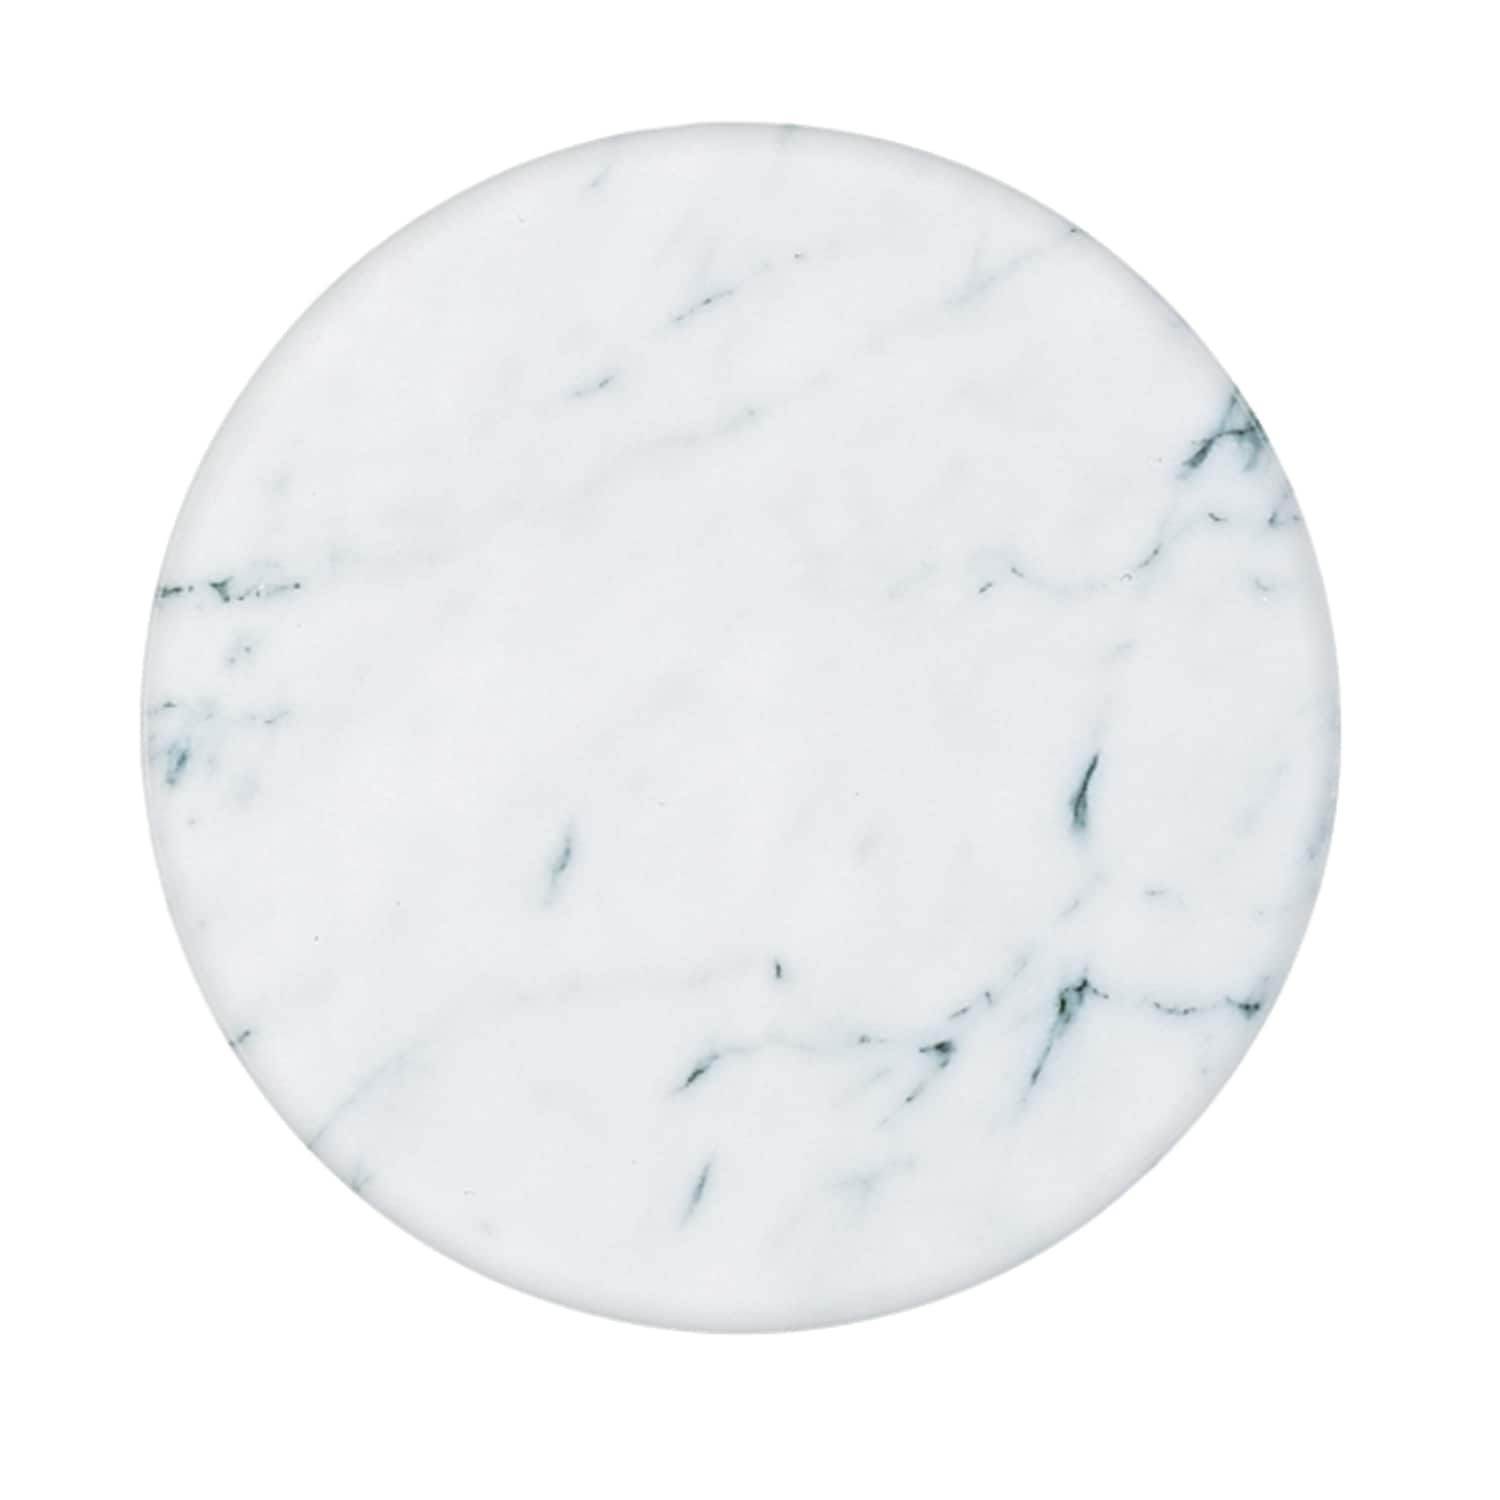 Fox Run White Marble 12 In Lazy Susan Marble Lazy Susan Lazy Susan White Marble